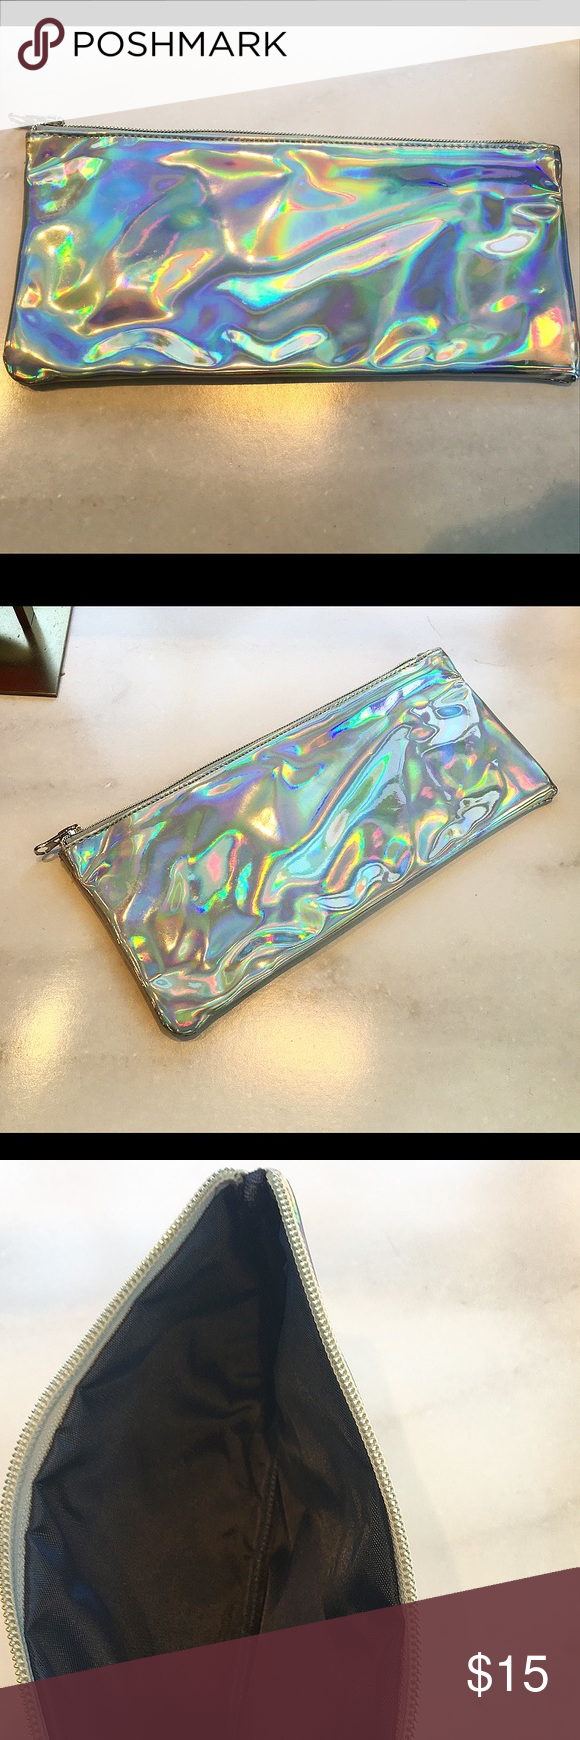 Large Holographic Cosmetic Bag 🦄 (With images) Cosmetic